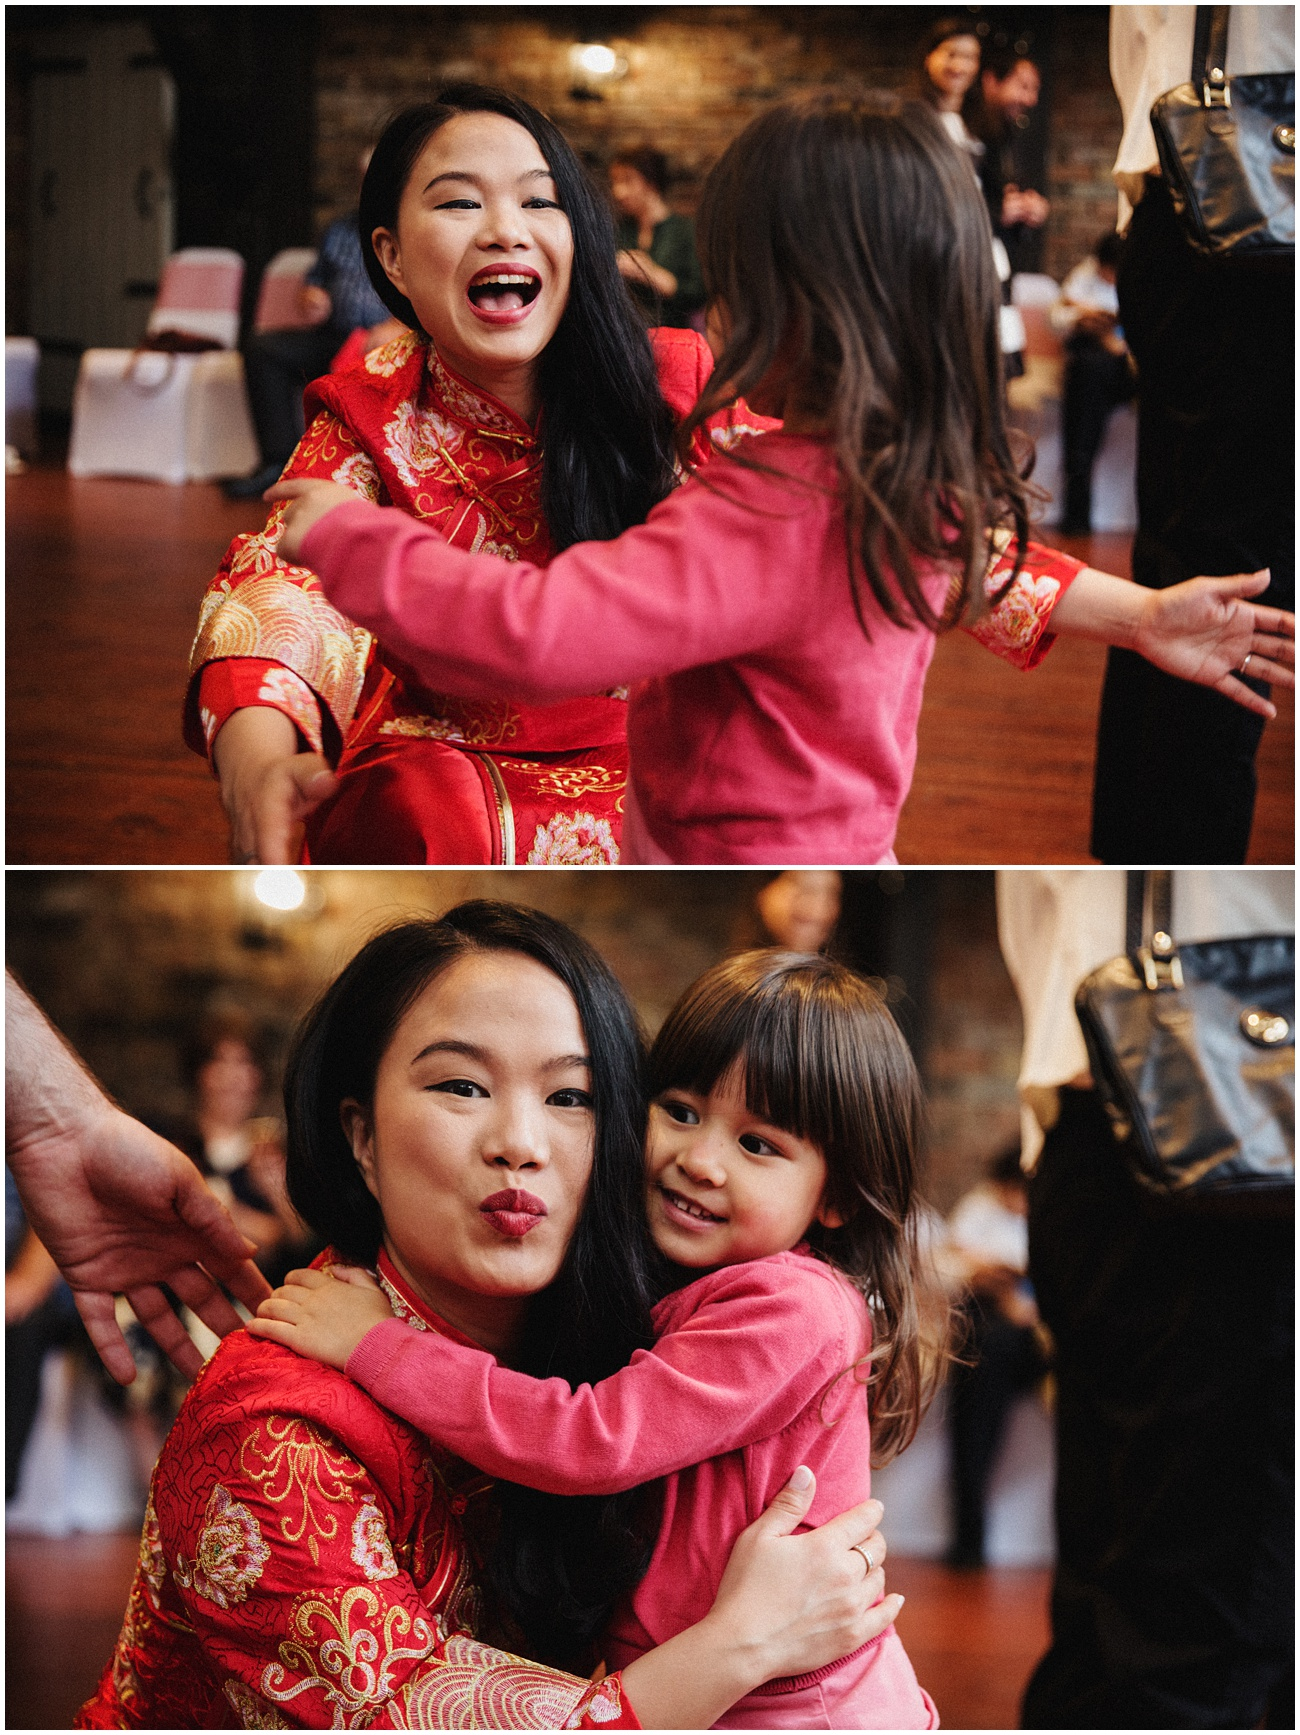 The bride hugs a young girl in her Chinese traditional wedding dress